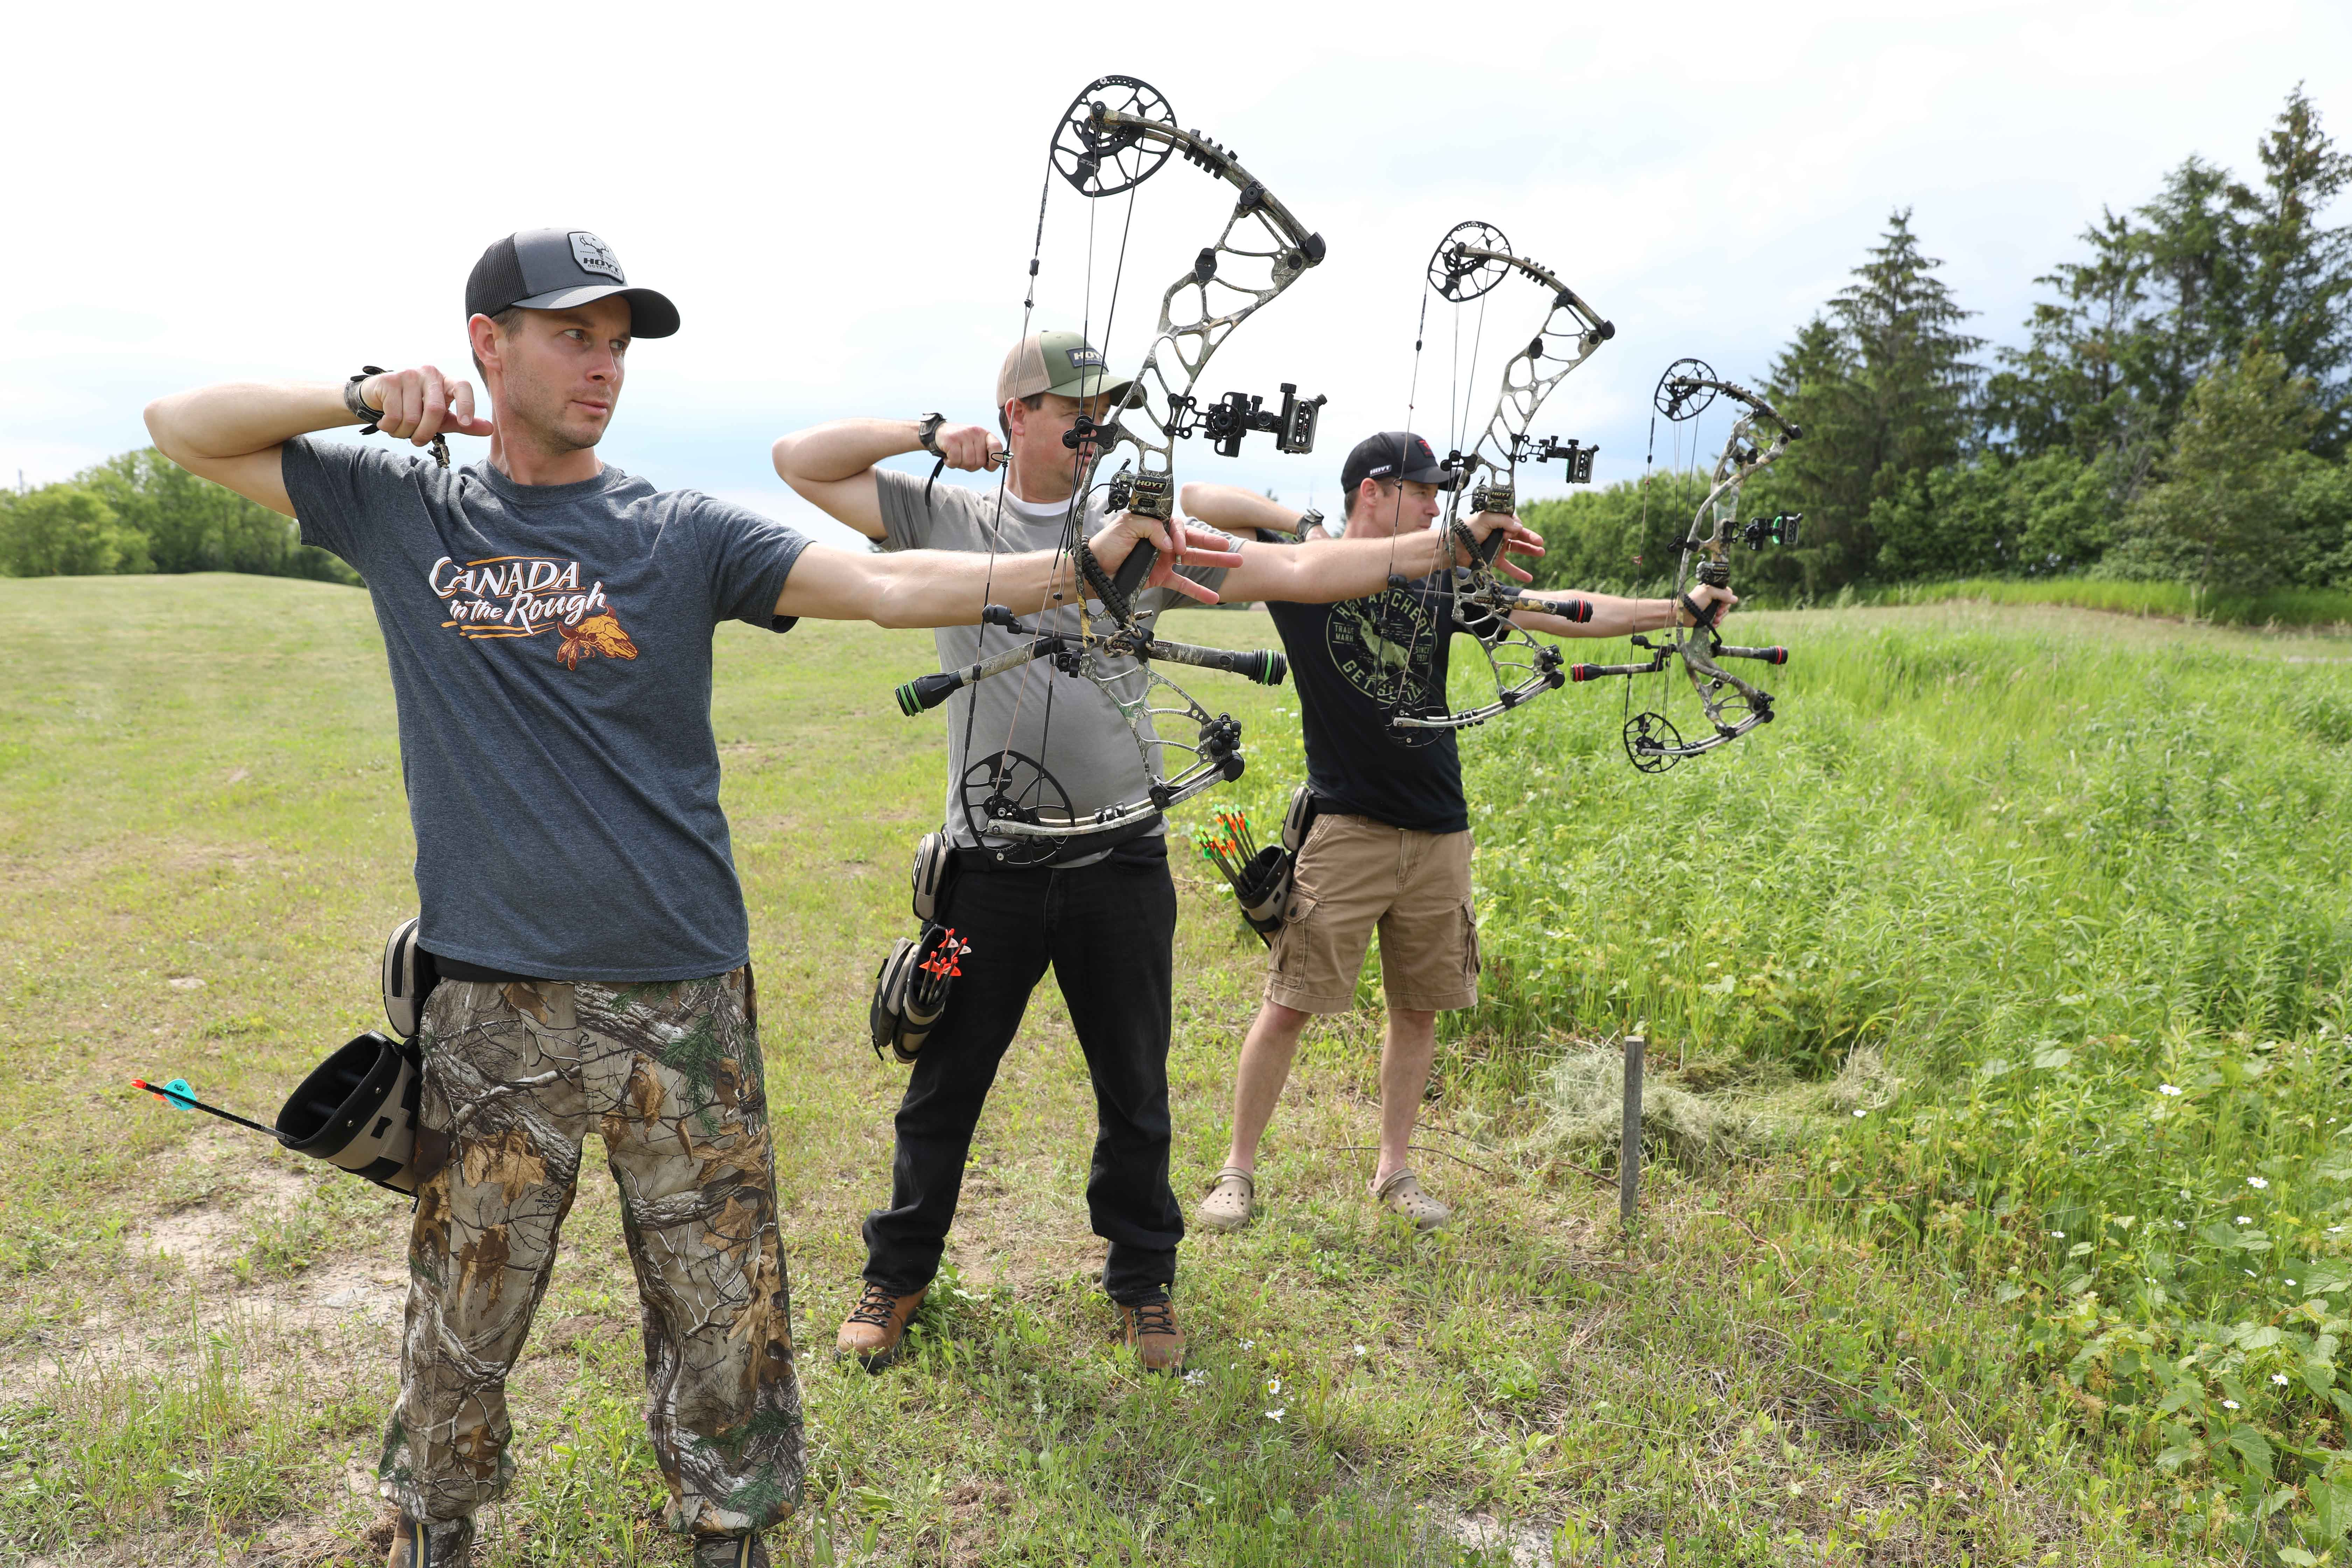 three hunters with compound bows